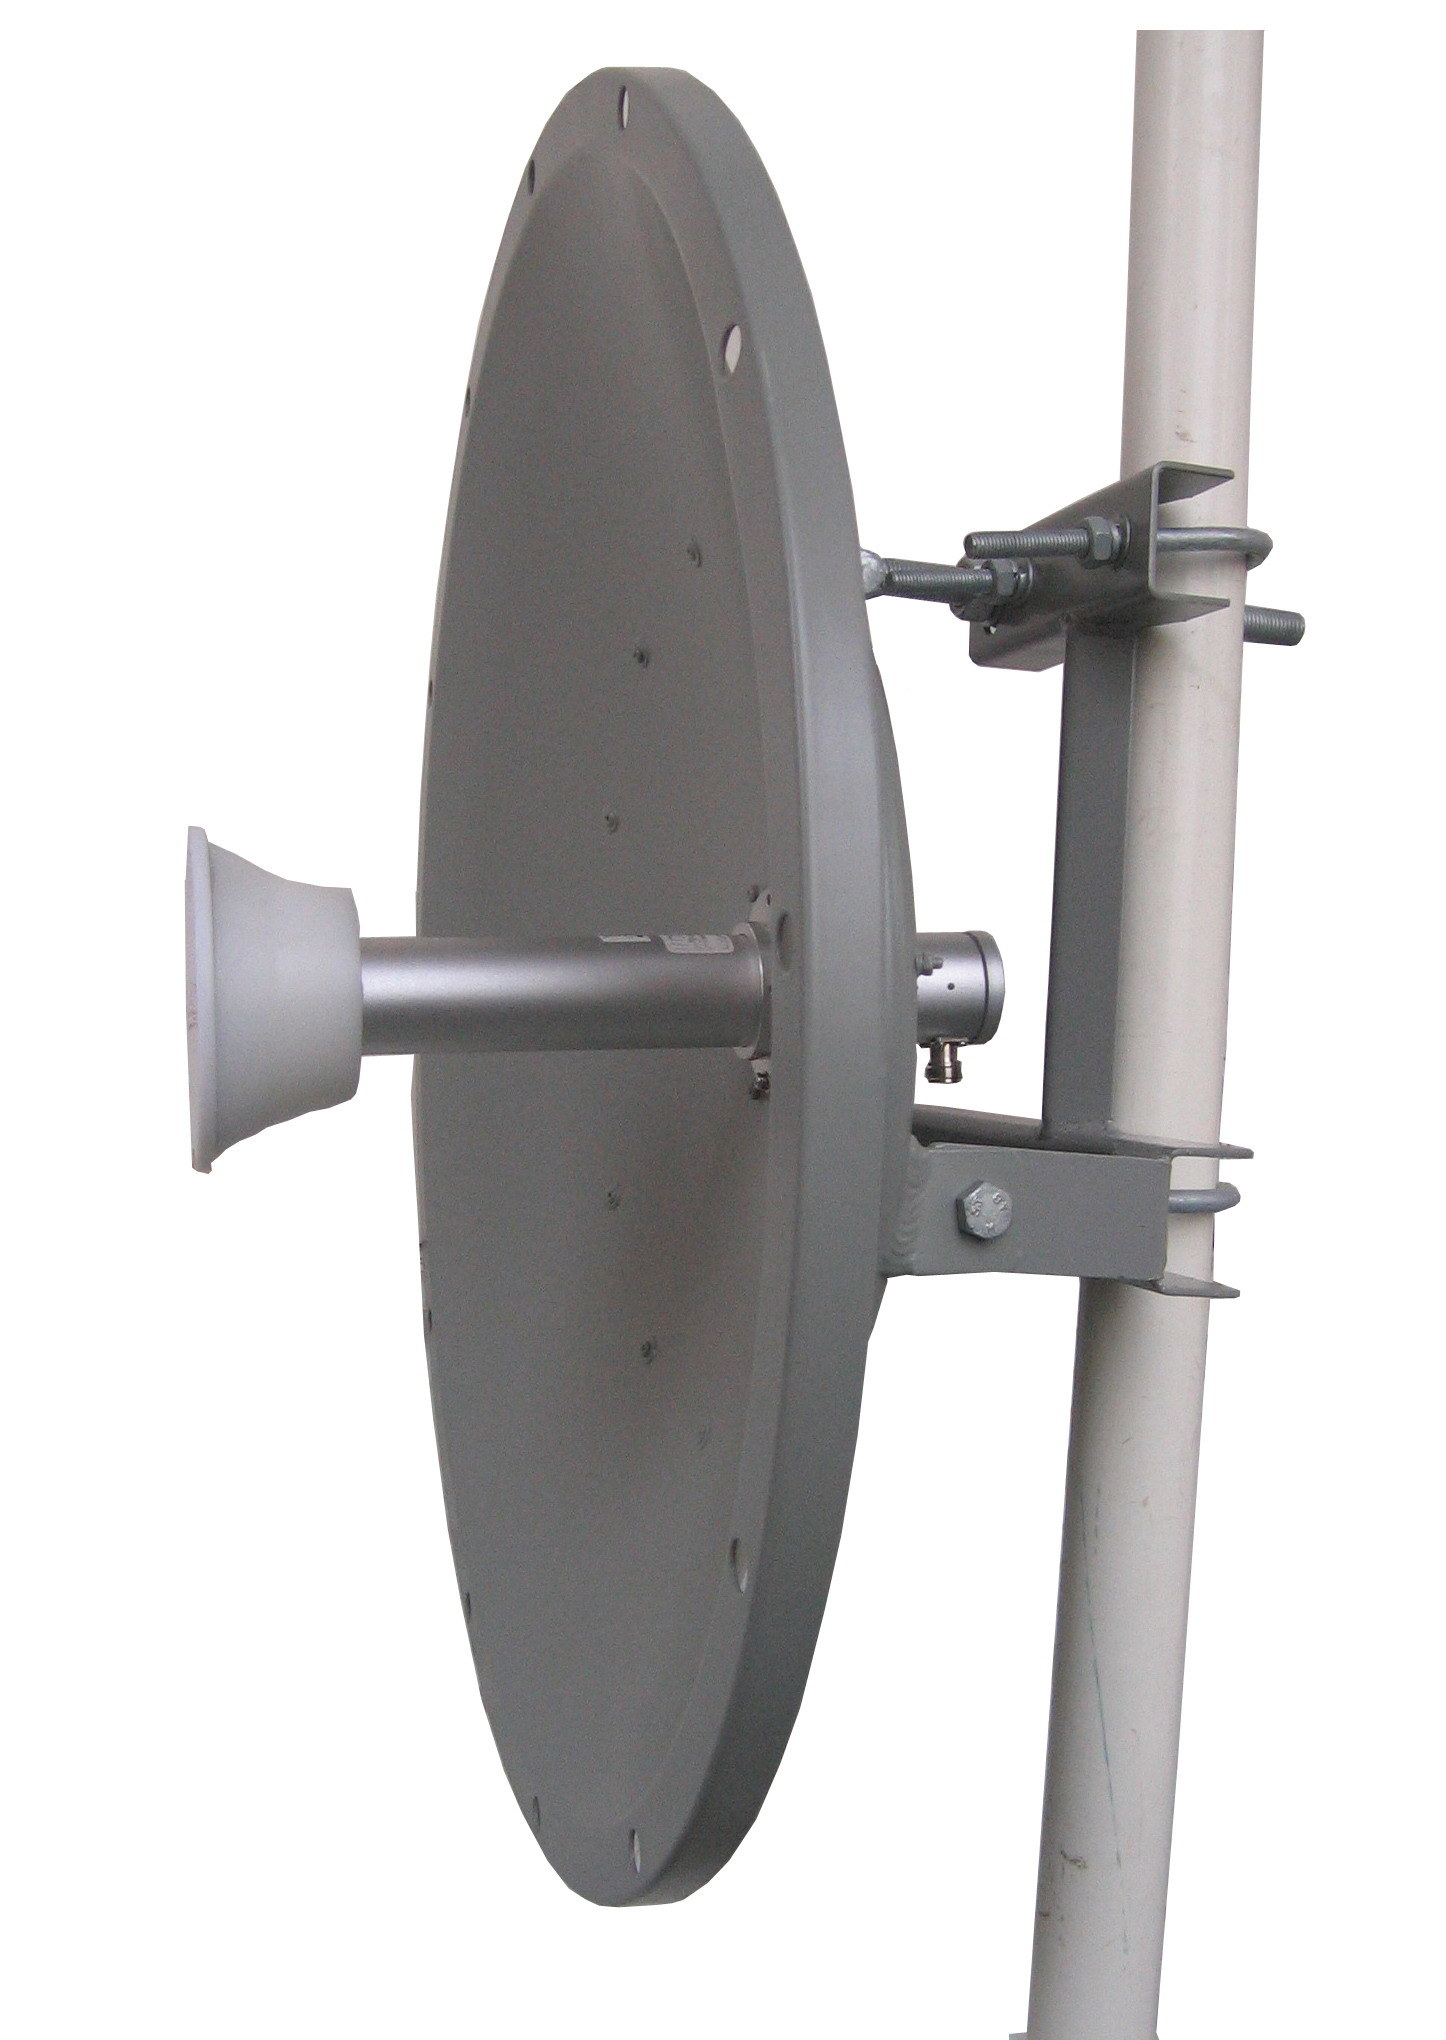 parabolic wifi antenna template - parabolic antenna for router